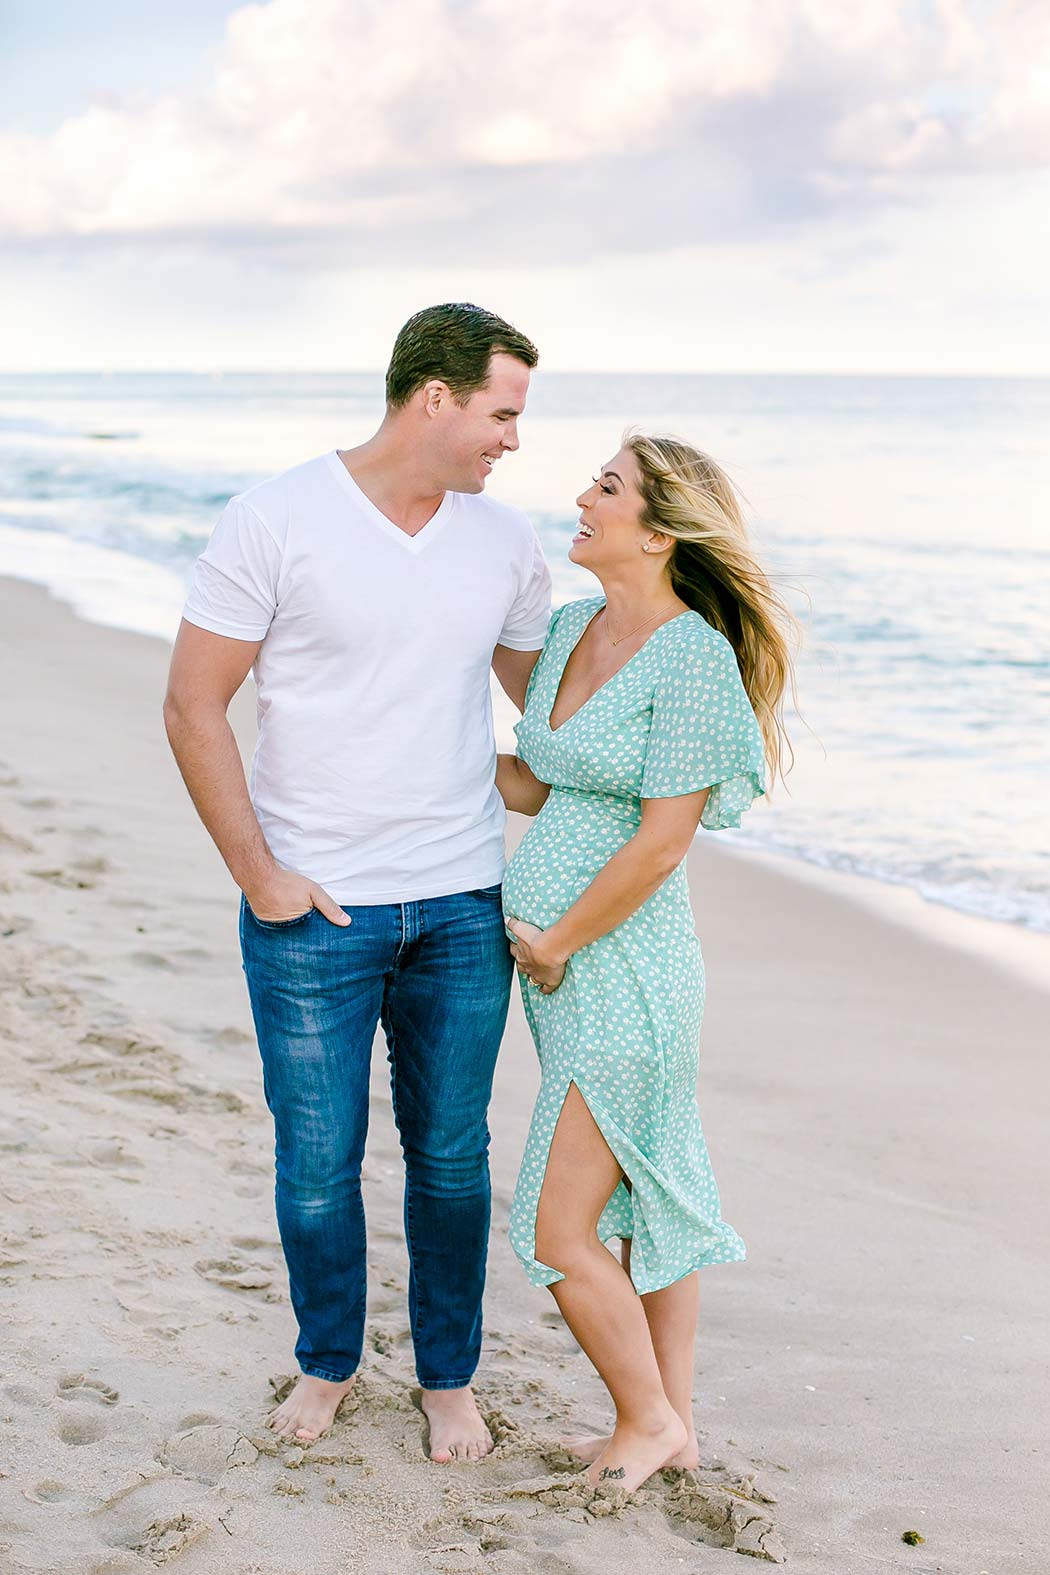 maternity poses for expectant mothers | fort lauderdale beach maternity photoshoot | maternity pose on beach | maternity beach photography | fort lauderdale beach maternity photographer